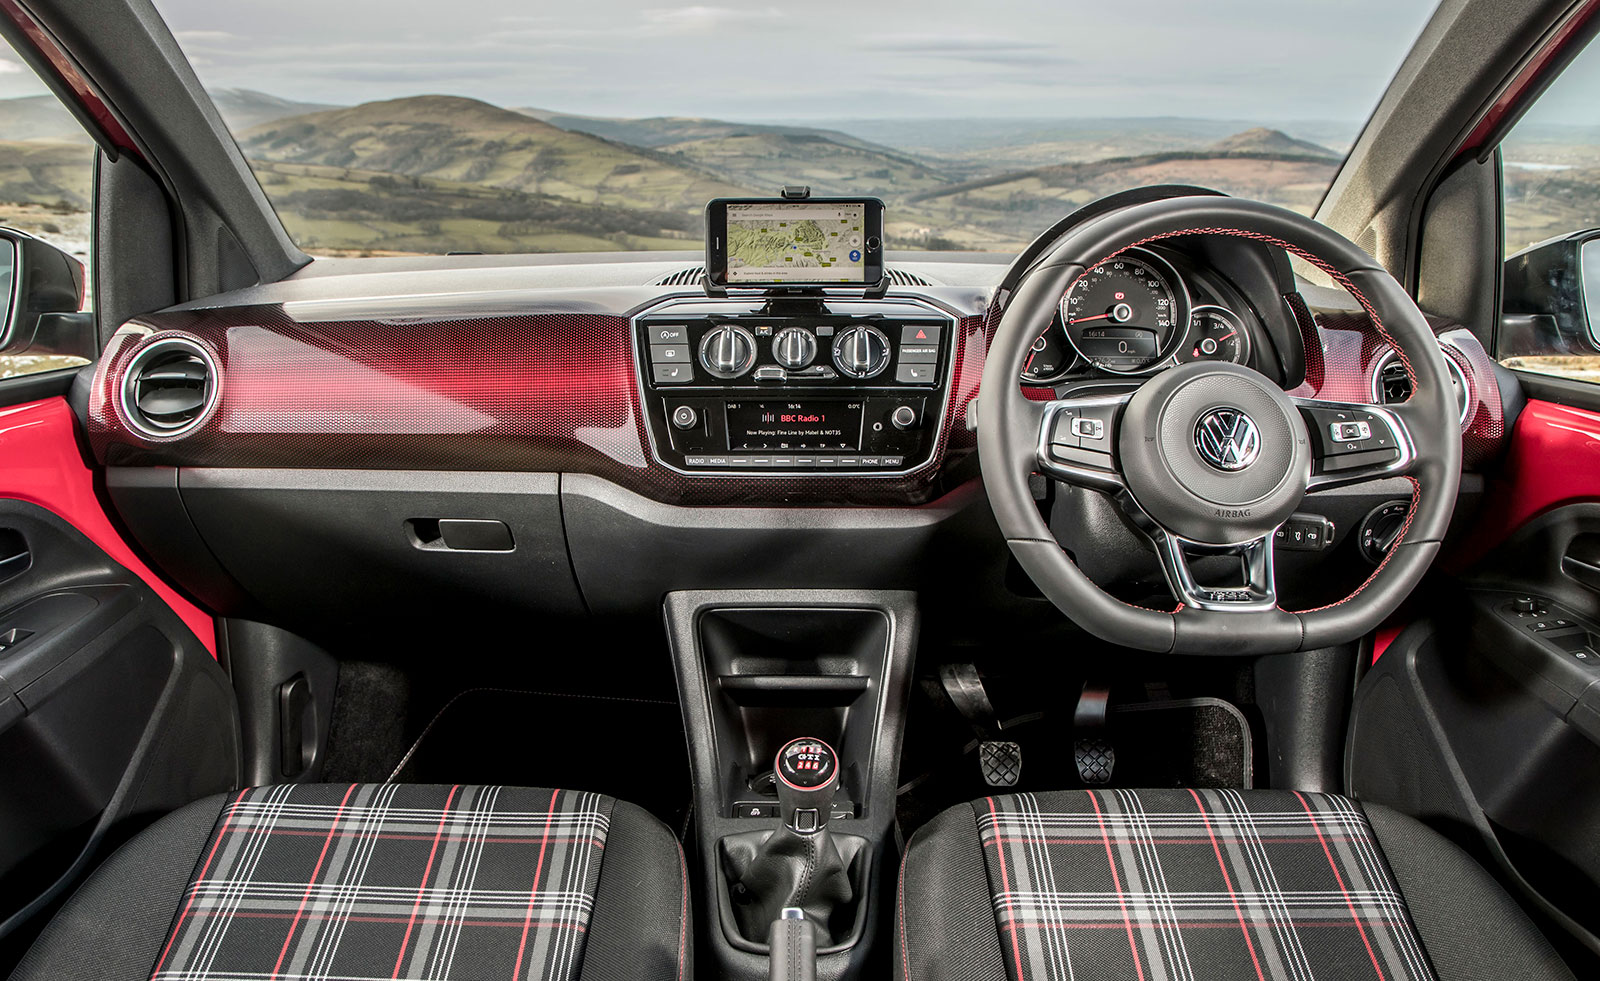 Volkswagen GTI Up review and test drive | Wallpaper*